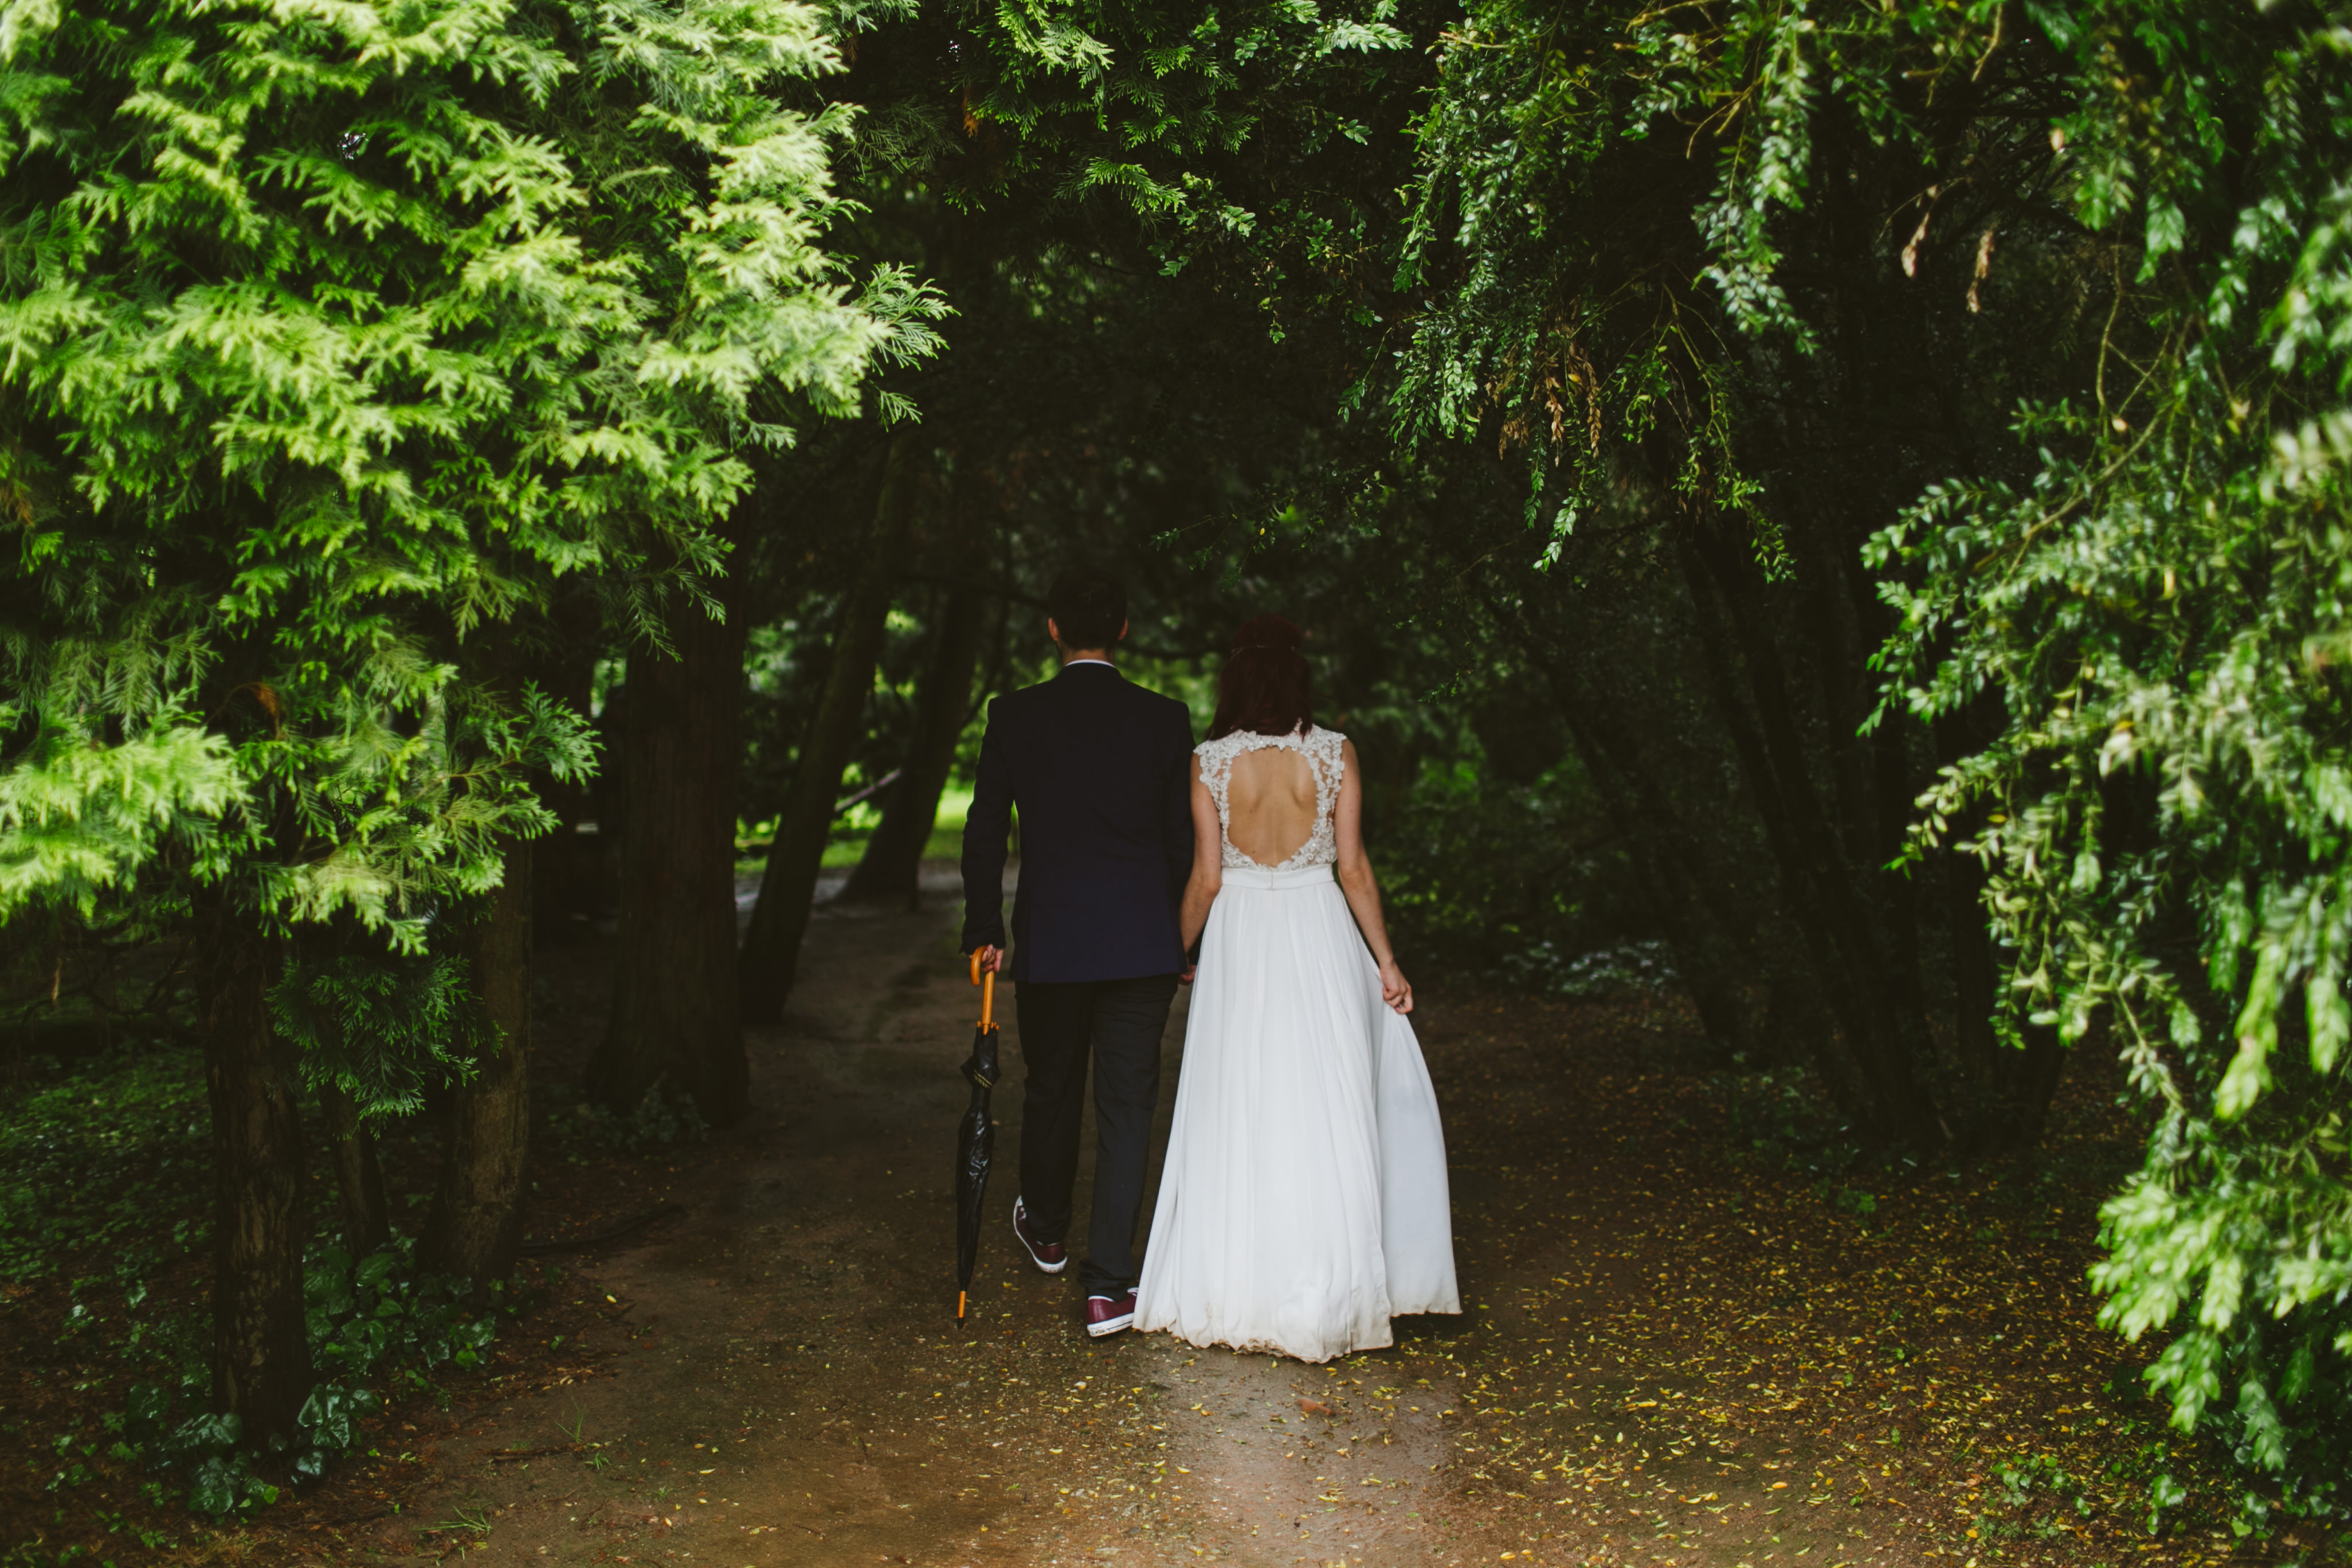 April Showers Wedding Pros and Cons